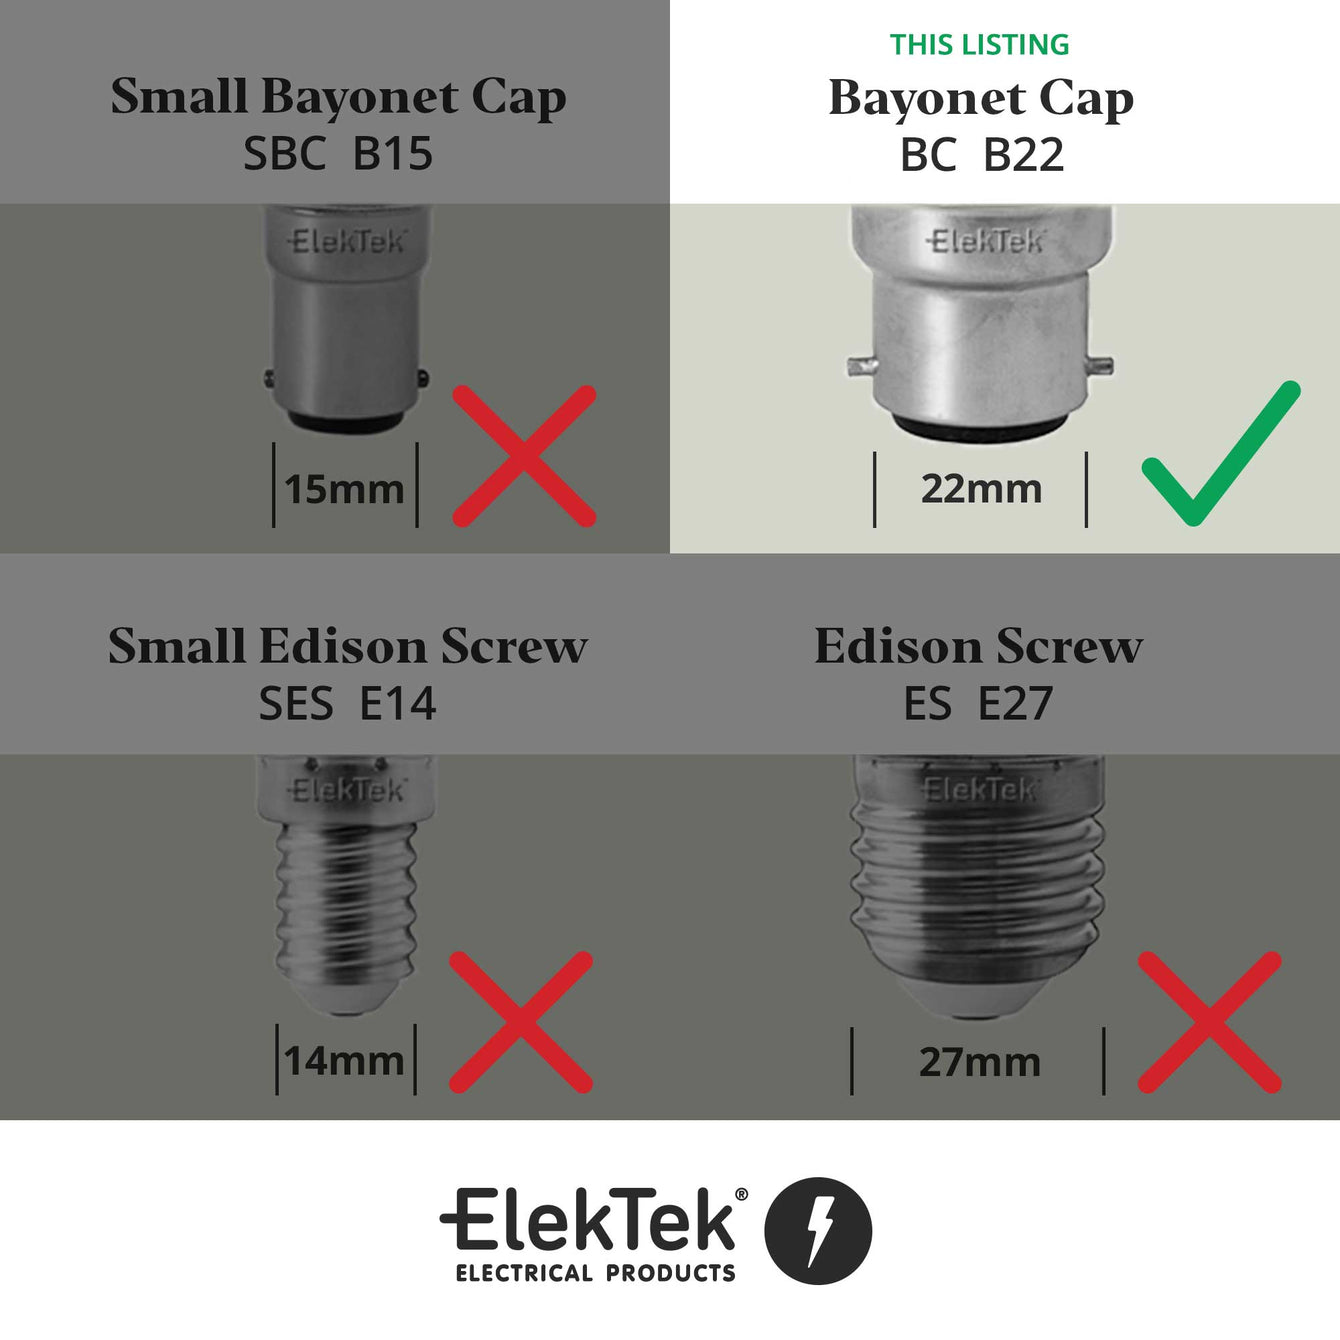 ElekTek Safety Switch Lamp Holder Half Inch Bayonet Cap B22 With Matching Cable Cord Grip Brass - Buy It Better